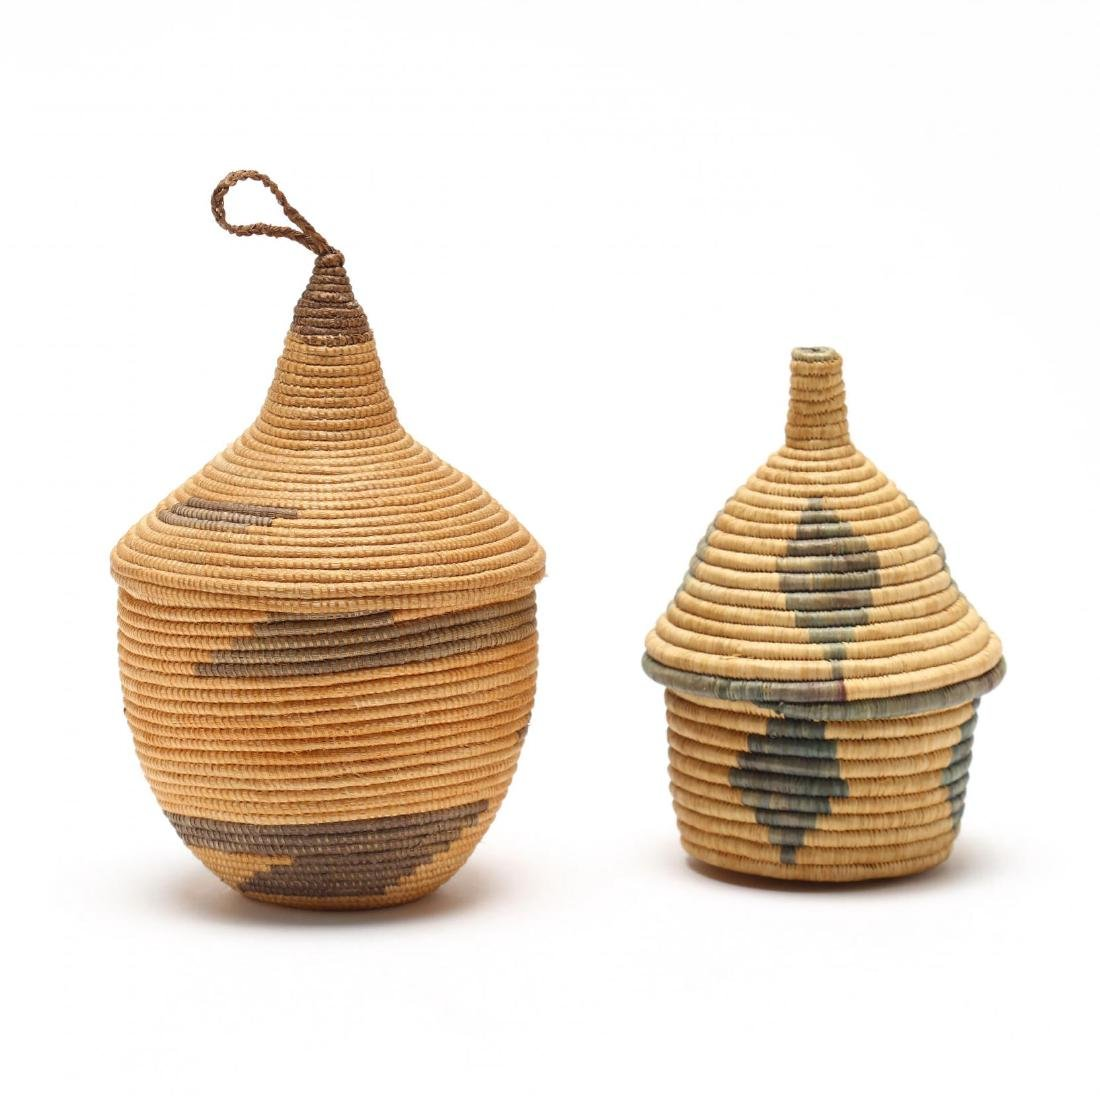 Two African Lidded Tutsi Baskets - 2